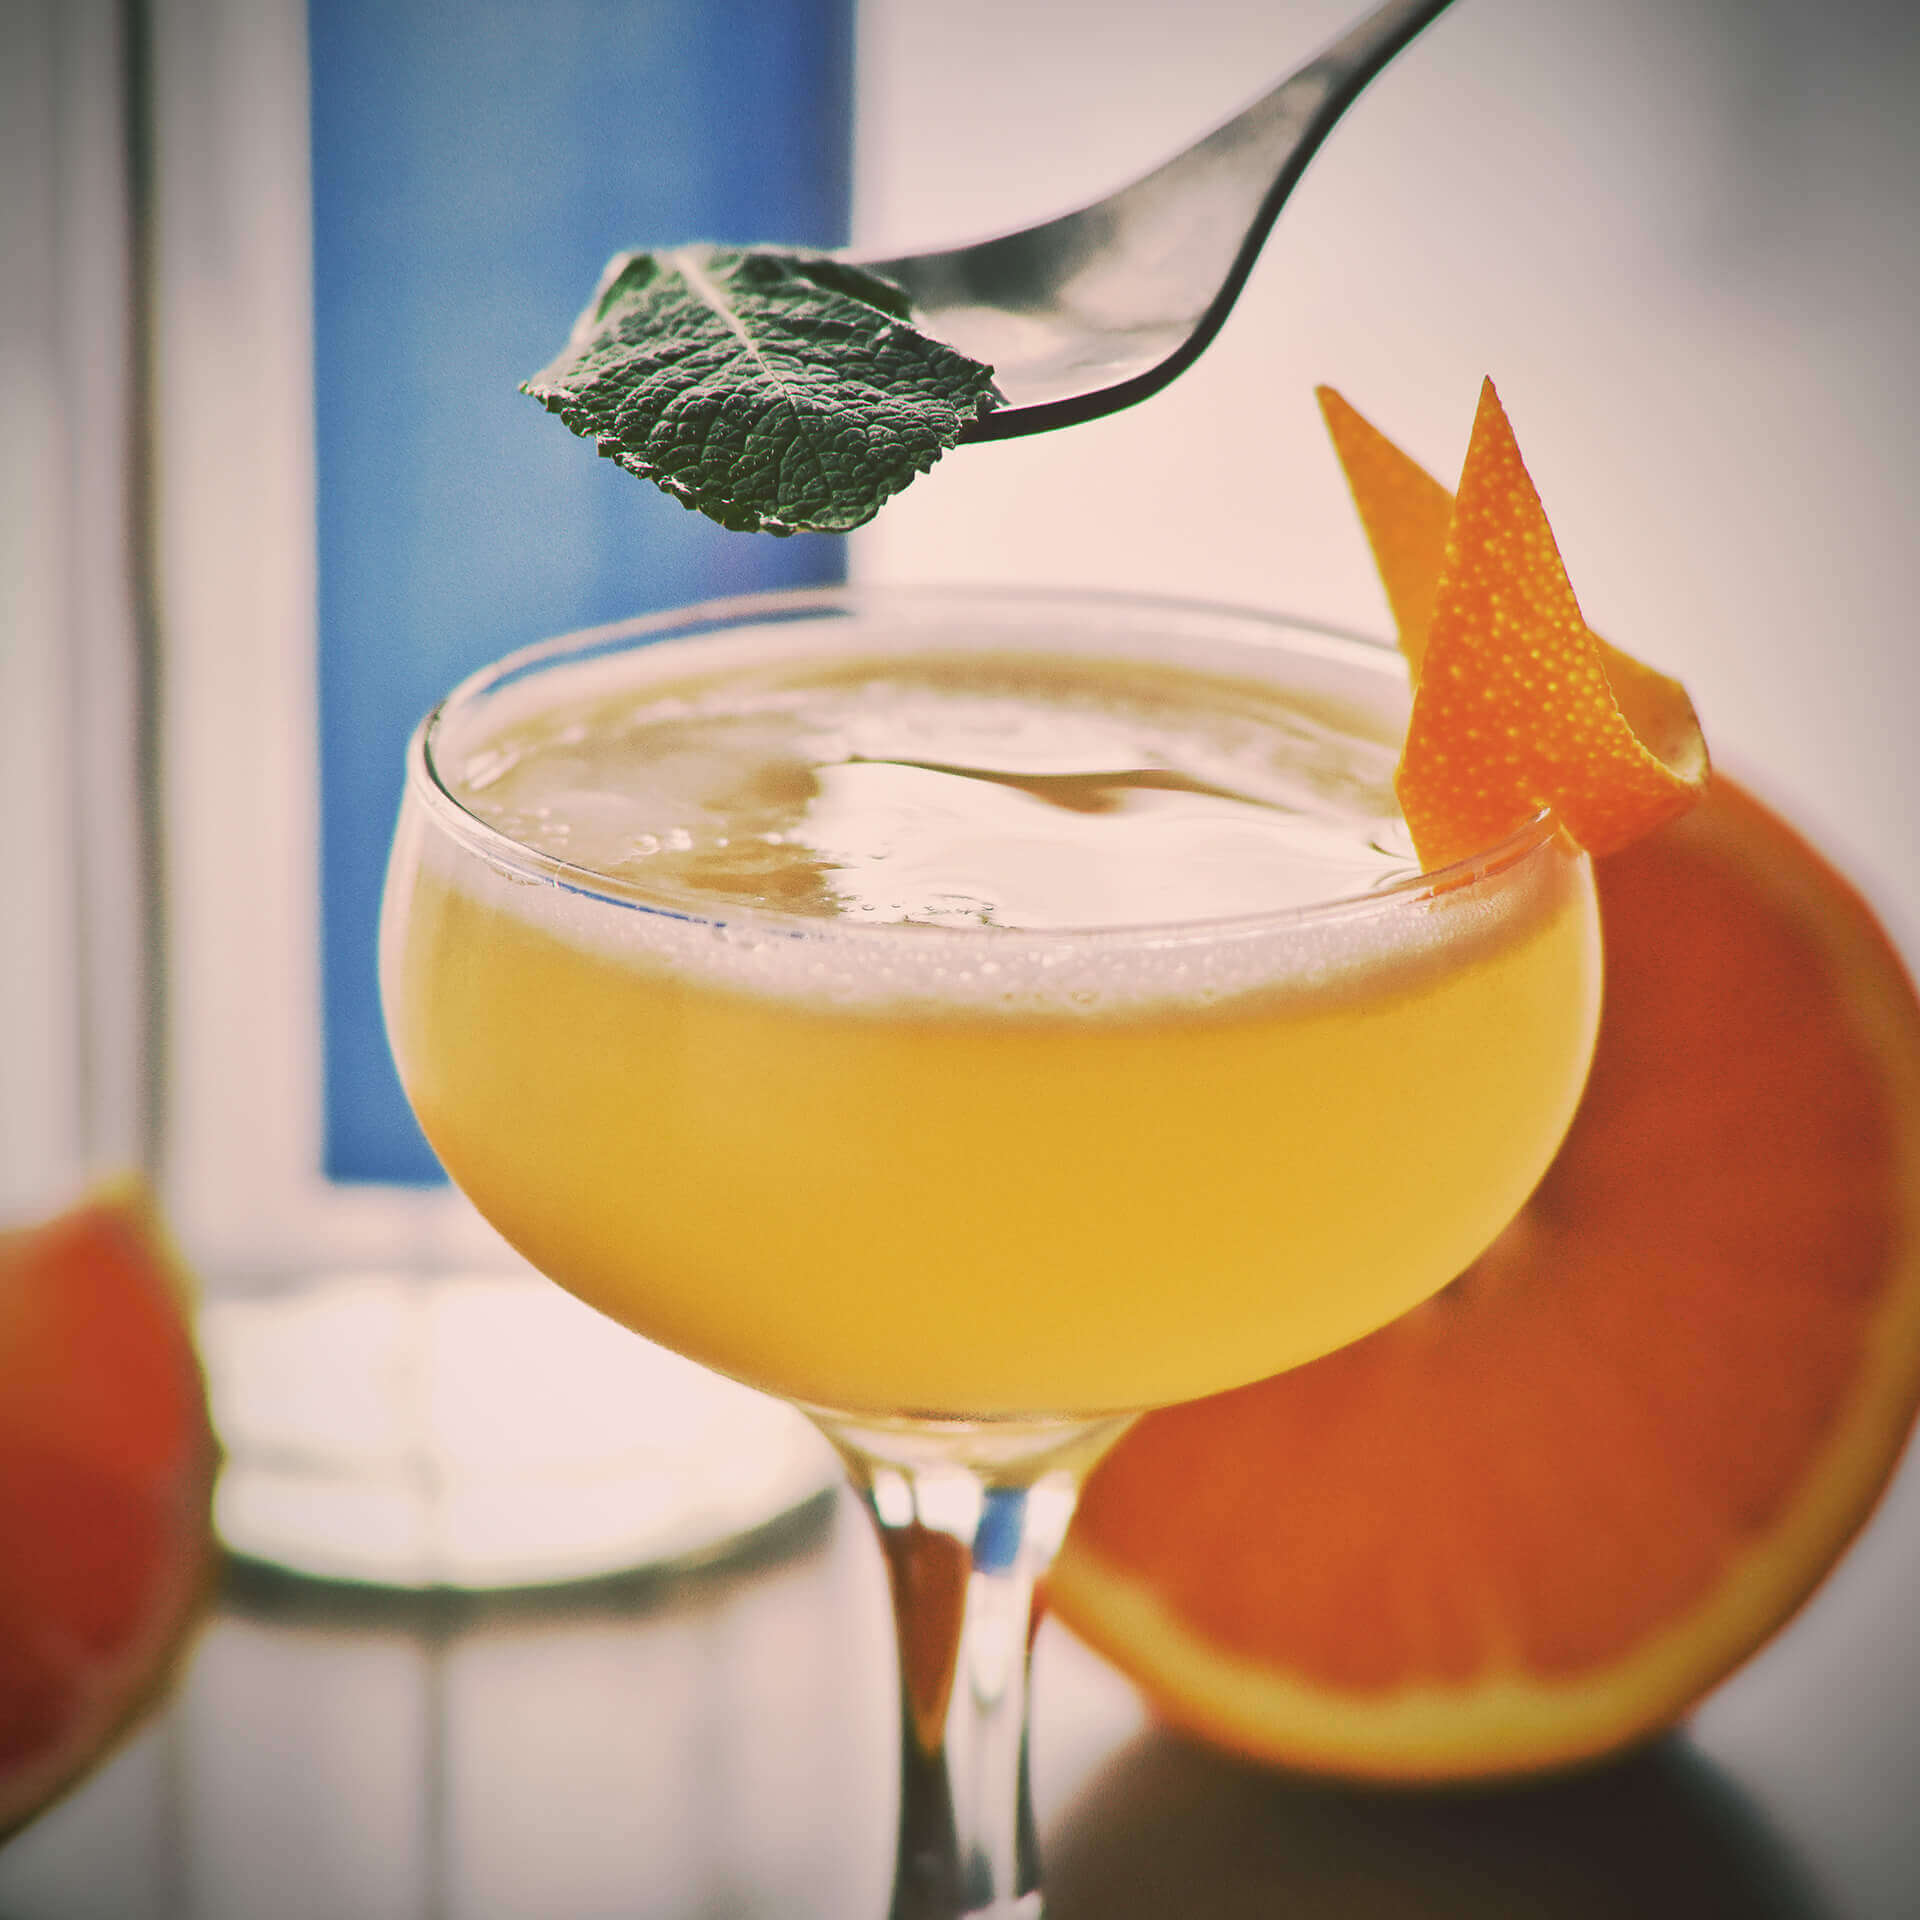 The Georgian Crush is a refreshing cocktail made with Georgian Bay Gin or Vodka